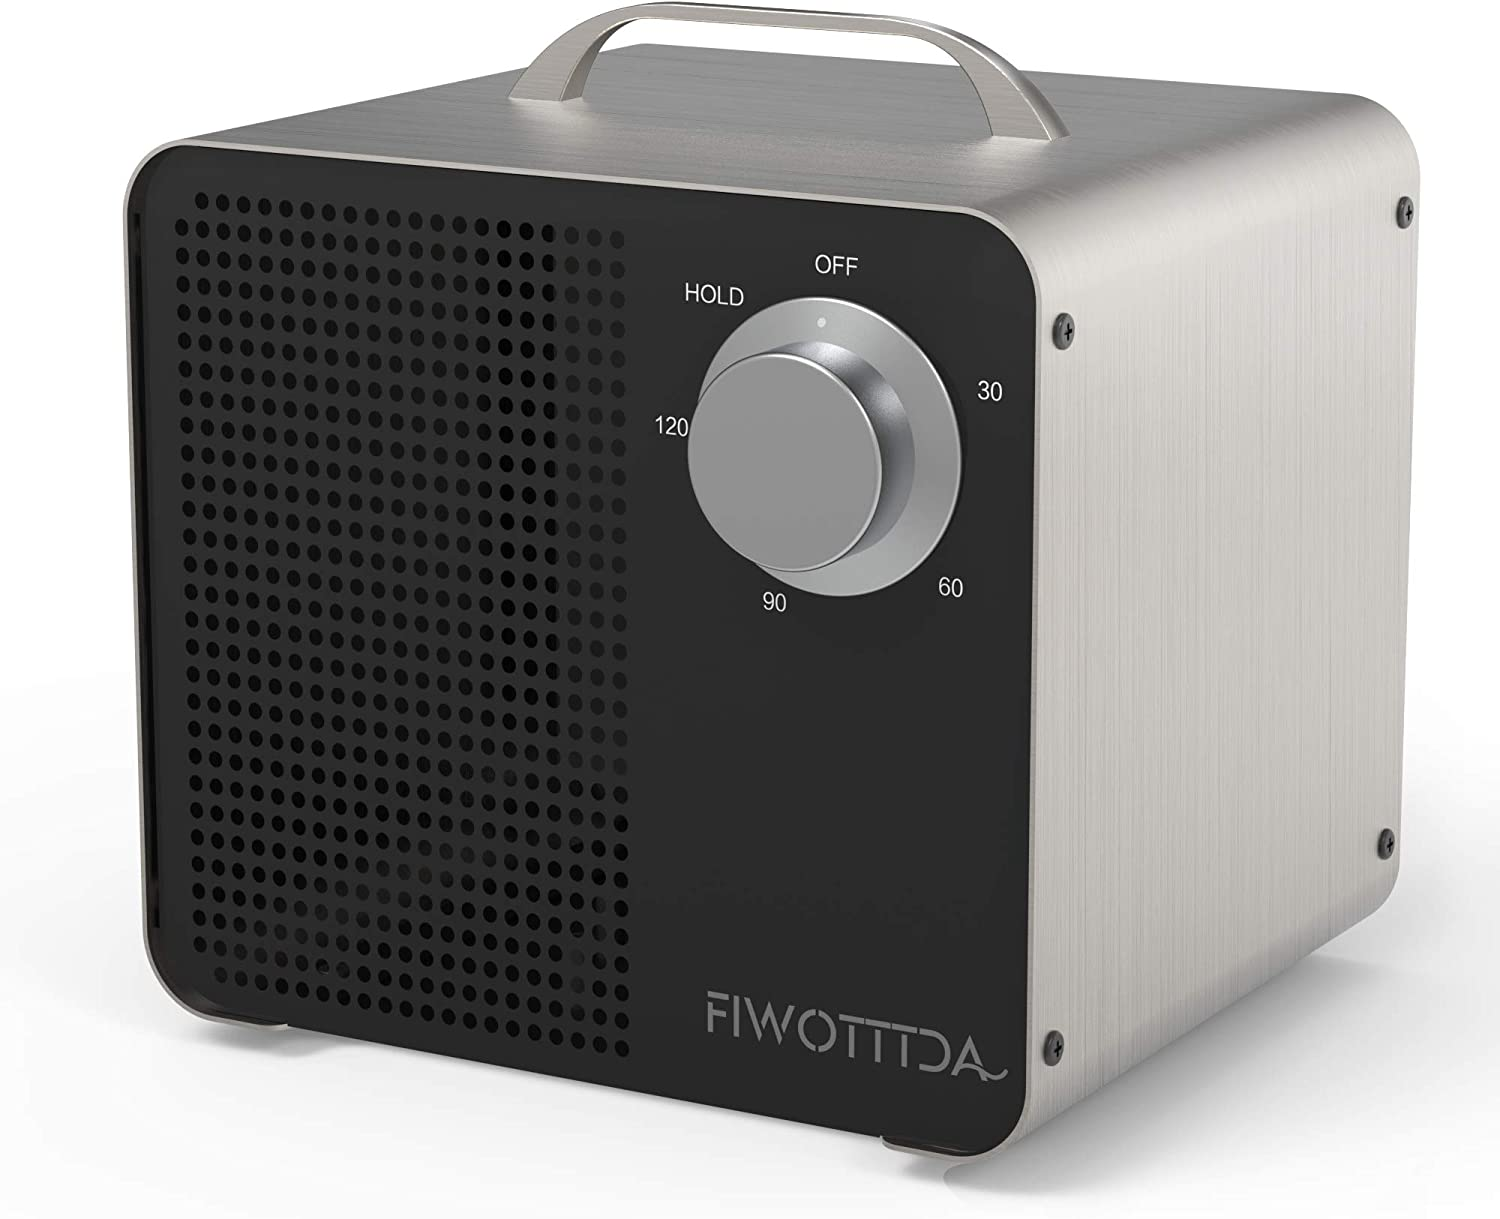 FIWOTTTDA Commercial Ozone Generator 10,000mg High Capacity for Home Rooms, Smoke, Cars and Pets, Black